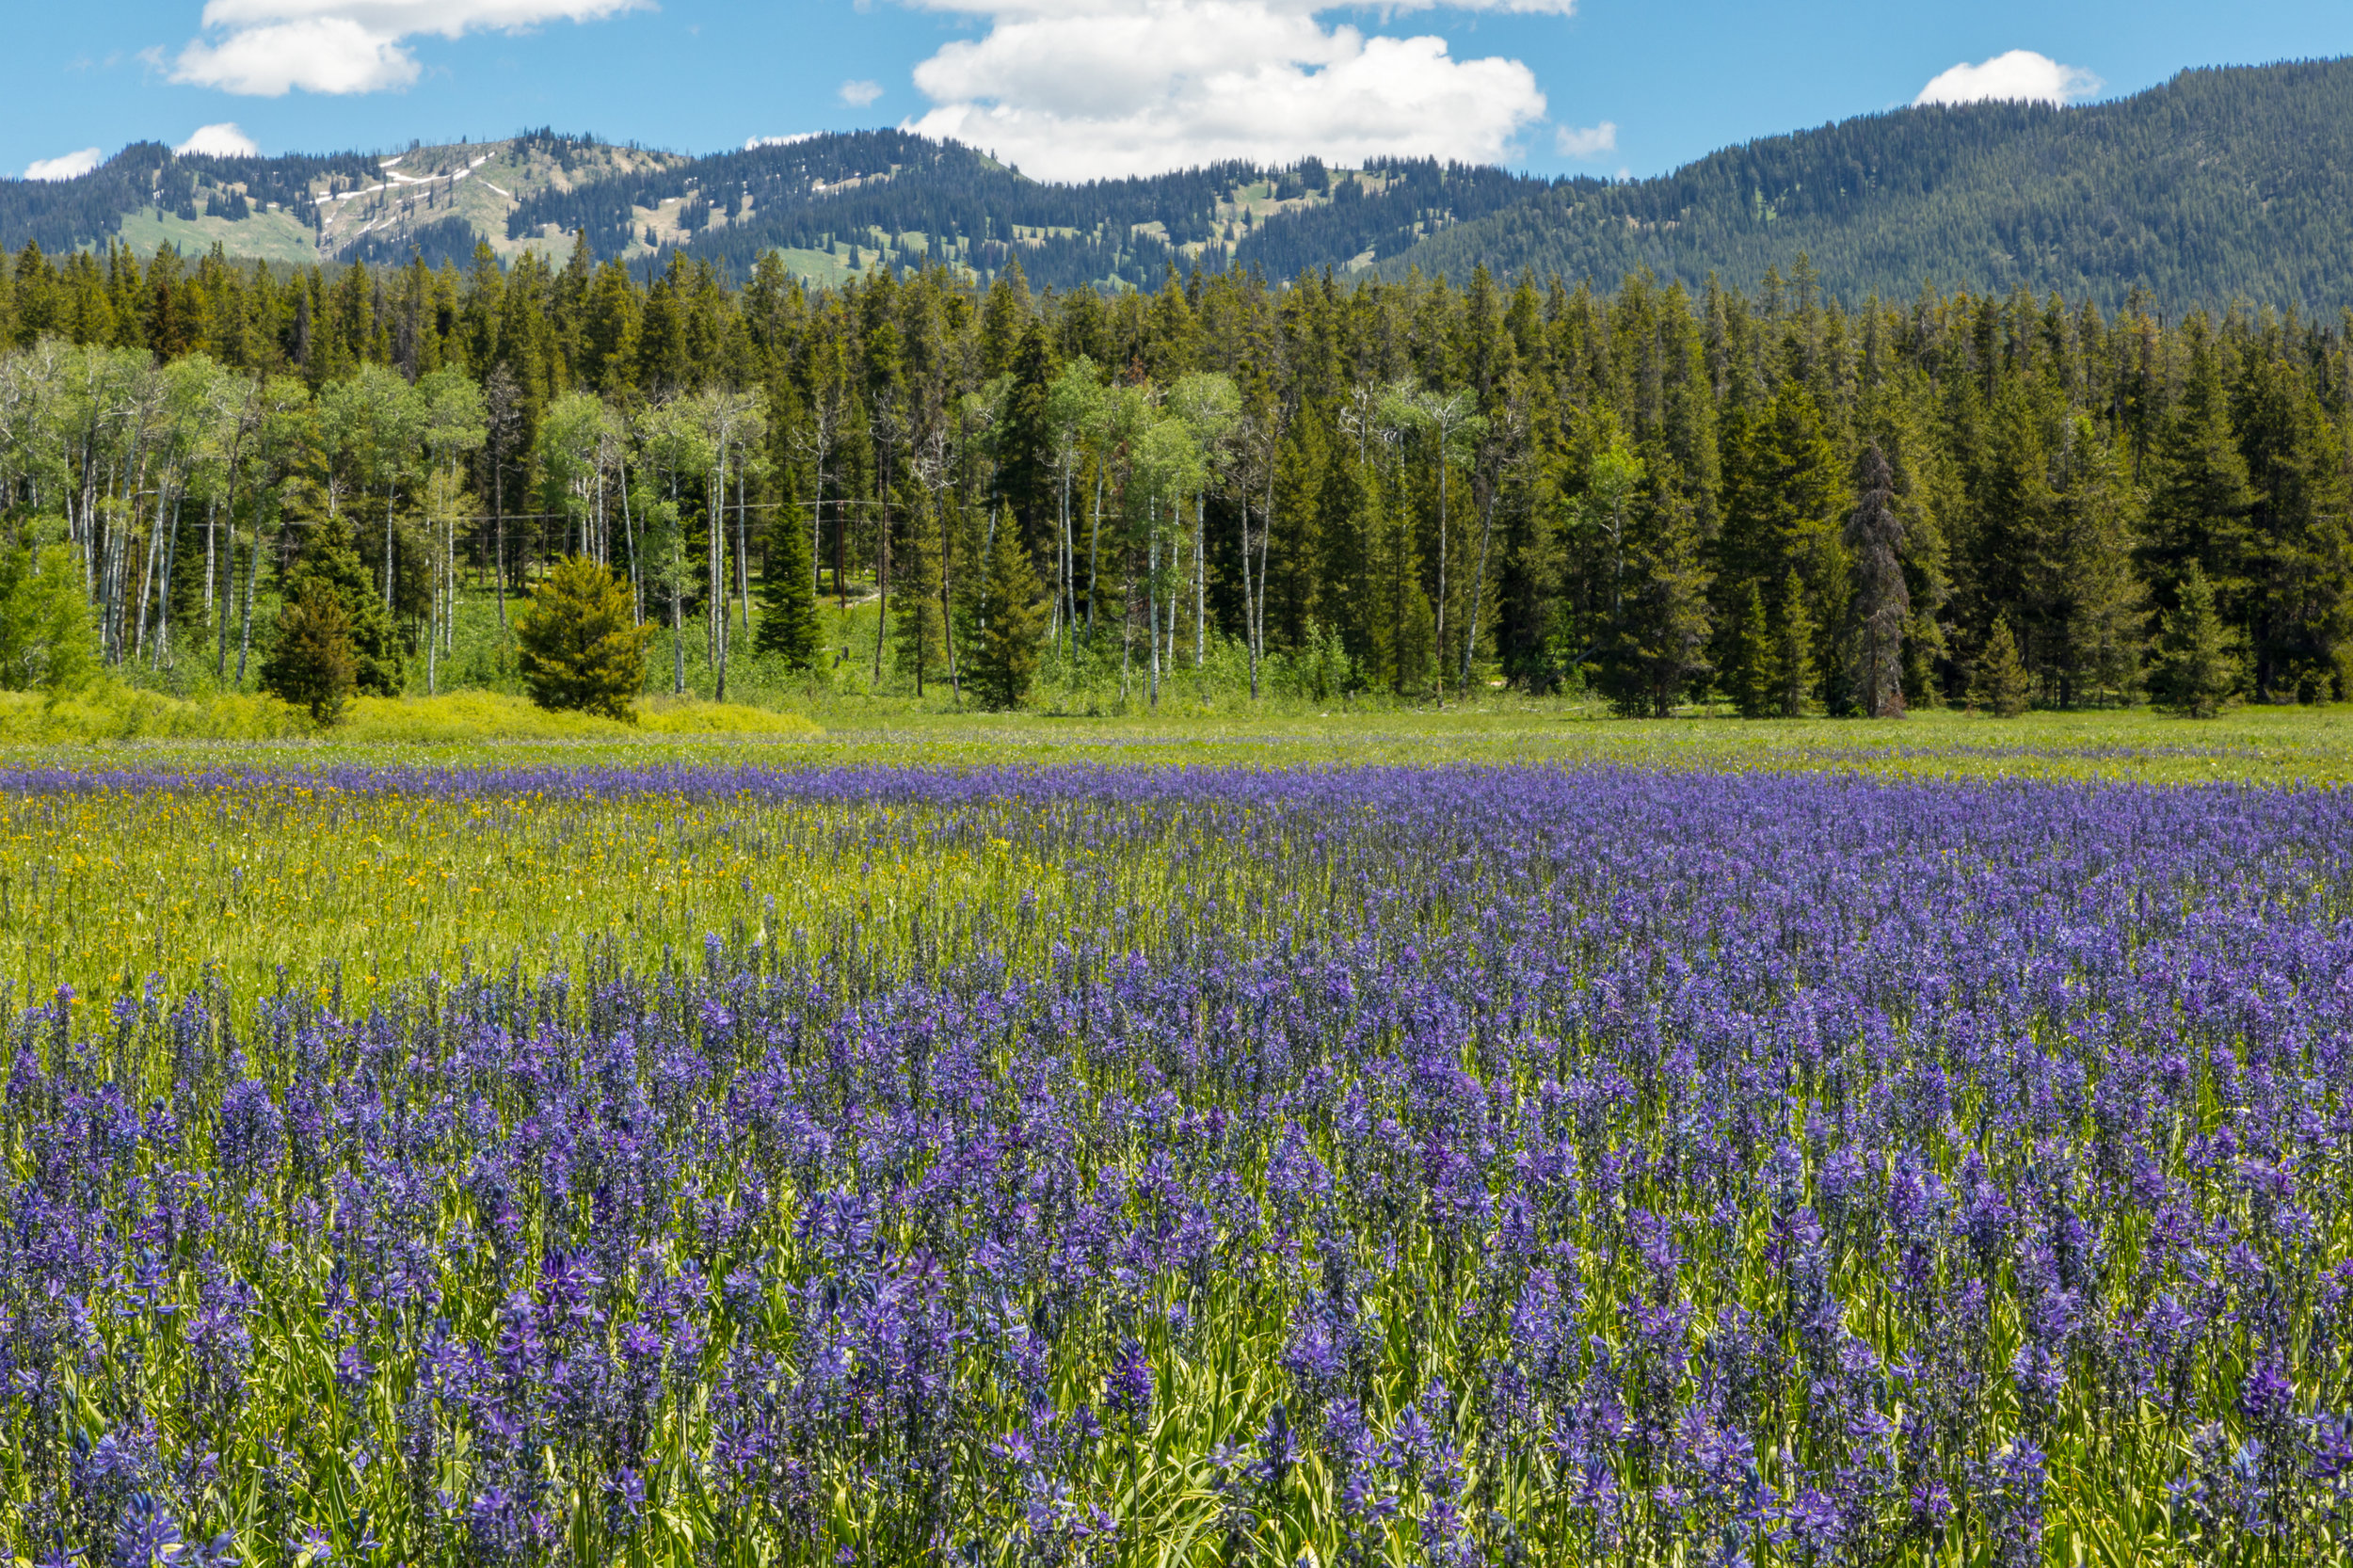 Wildflower Field in Grand Teton National Park, Image # 7935